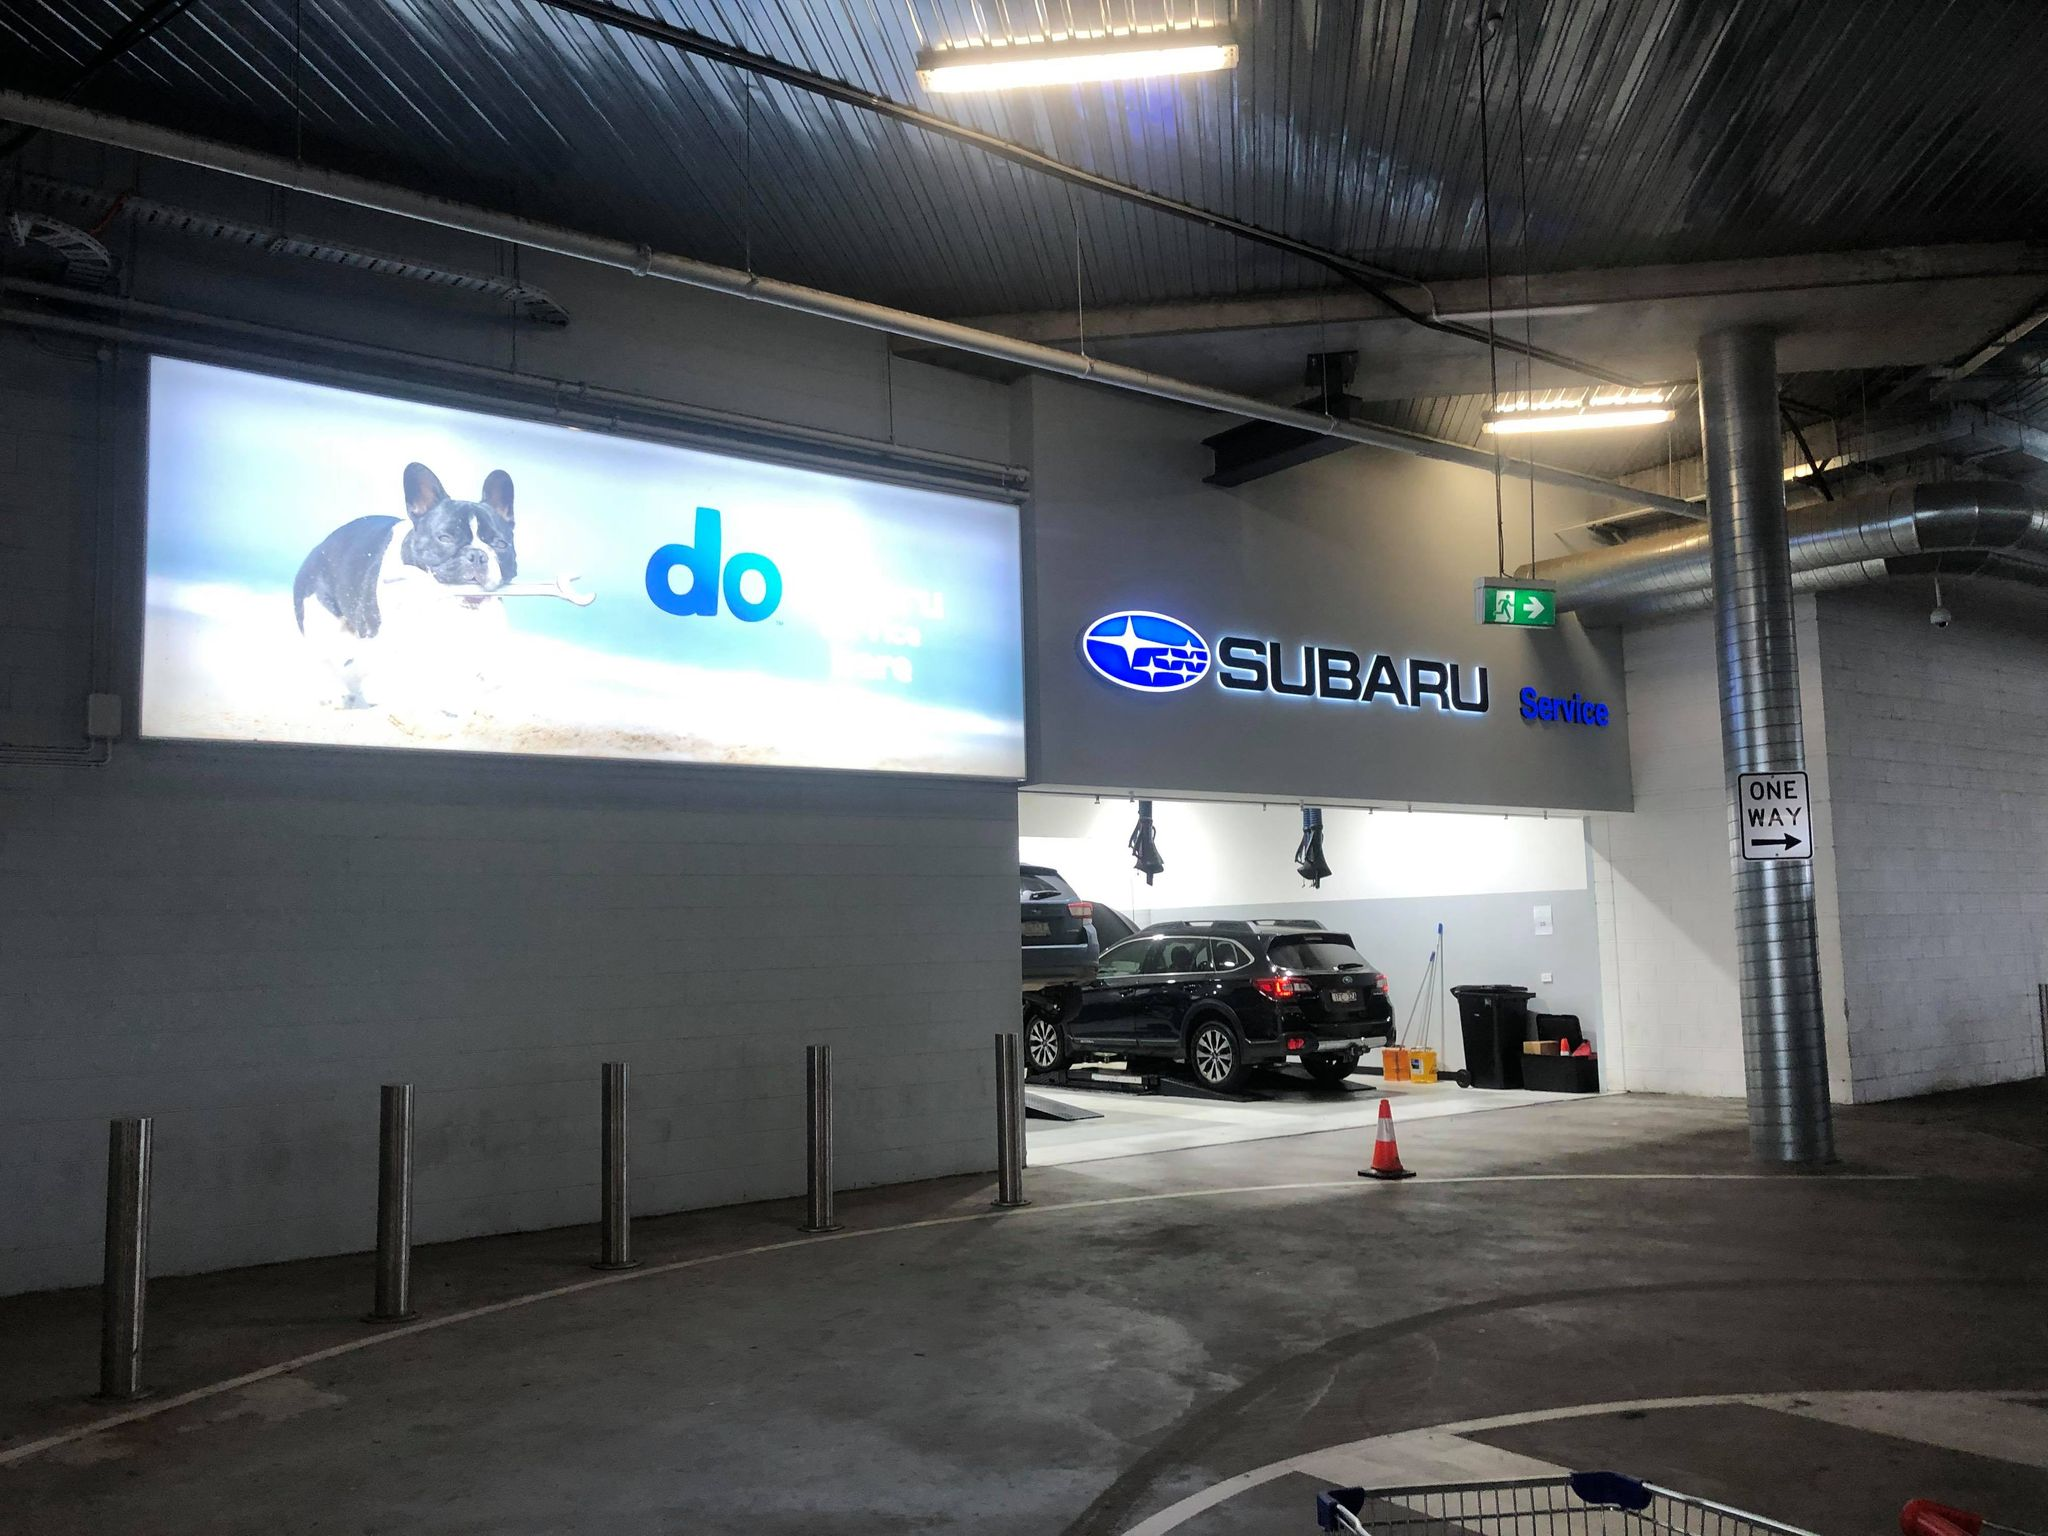 pacific werribee december 2020 subaru service centre